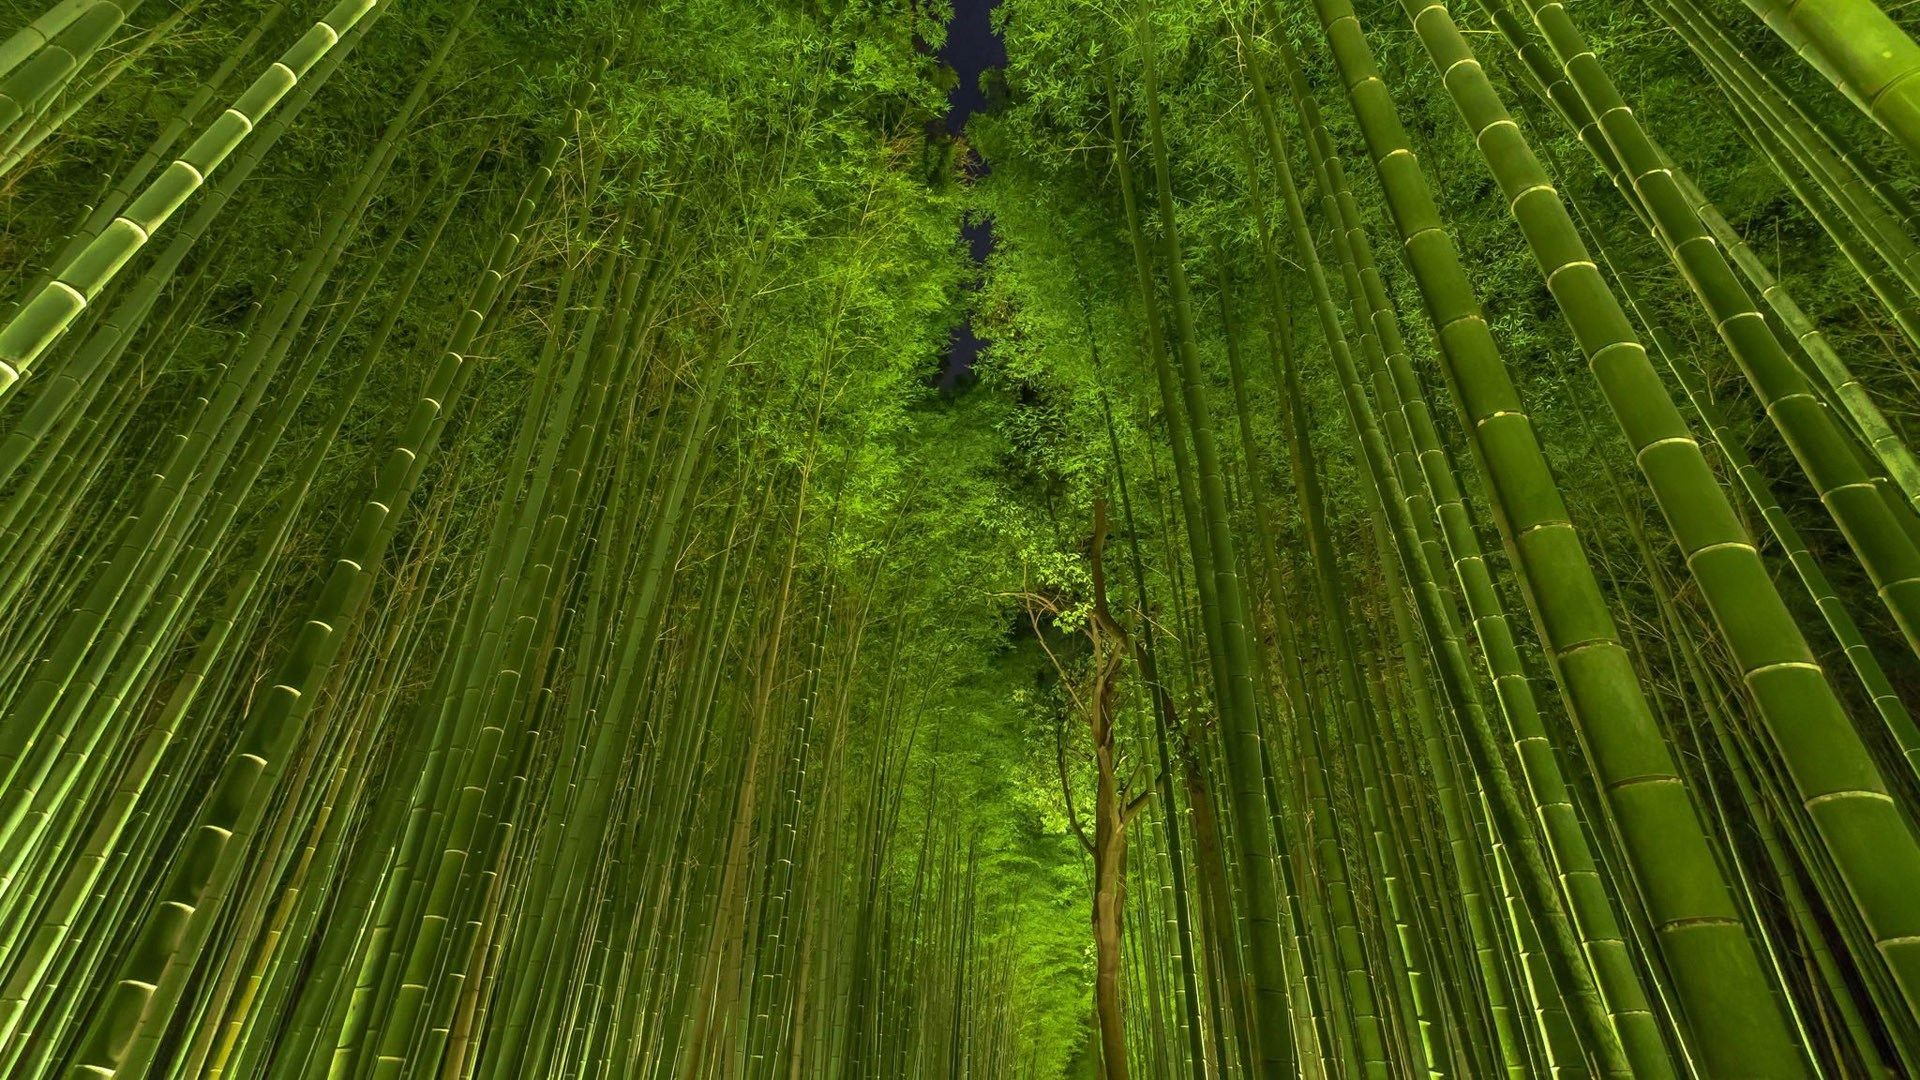 Green Bamboo Trees Wallpaper Images Hd Wallpapers Feng Shui